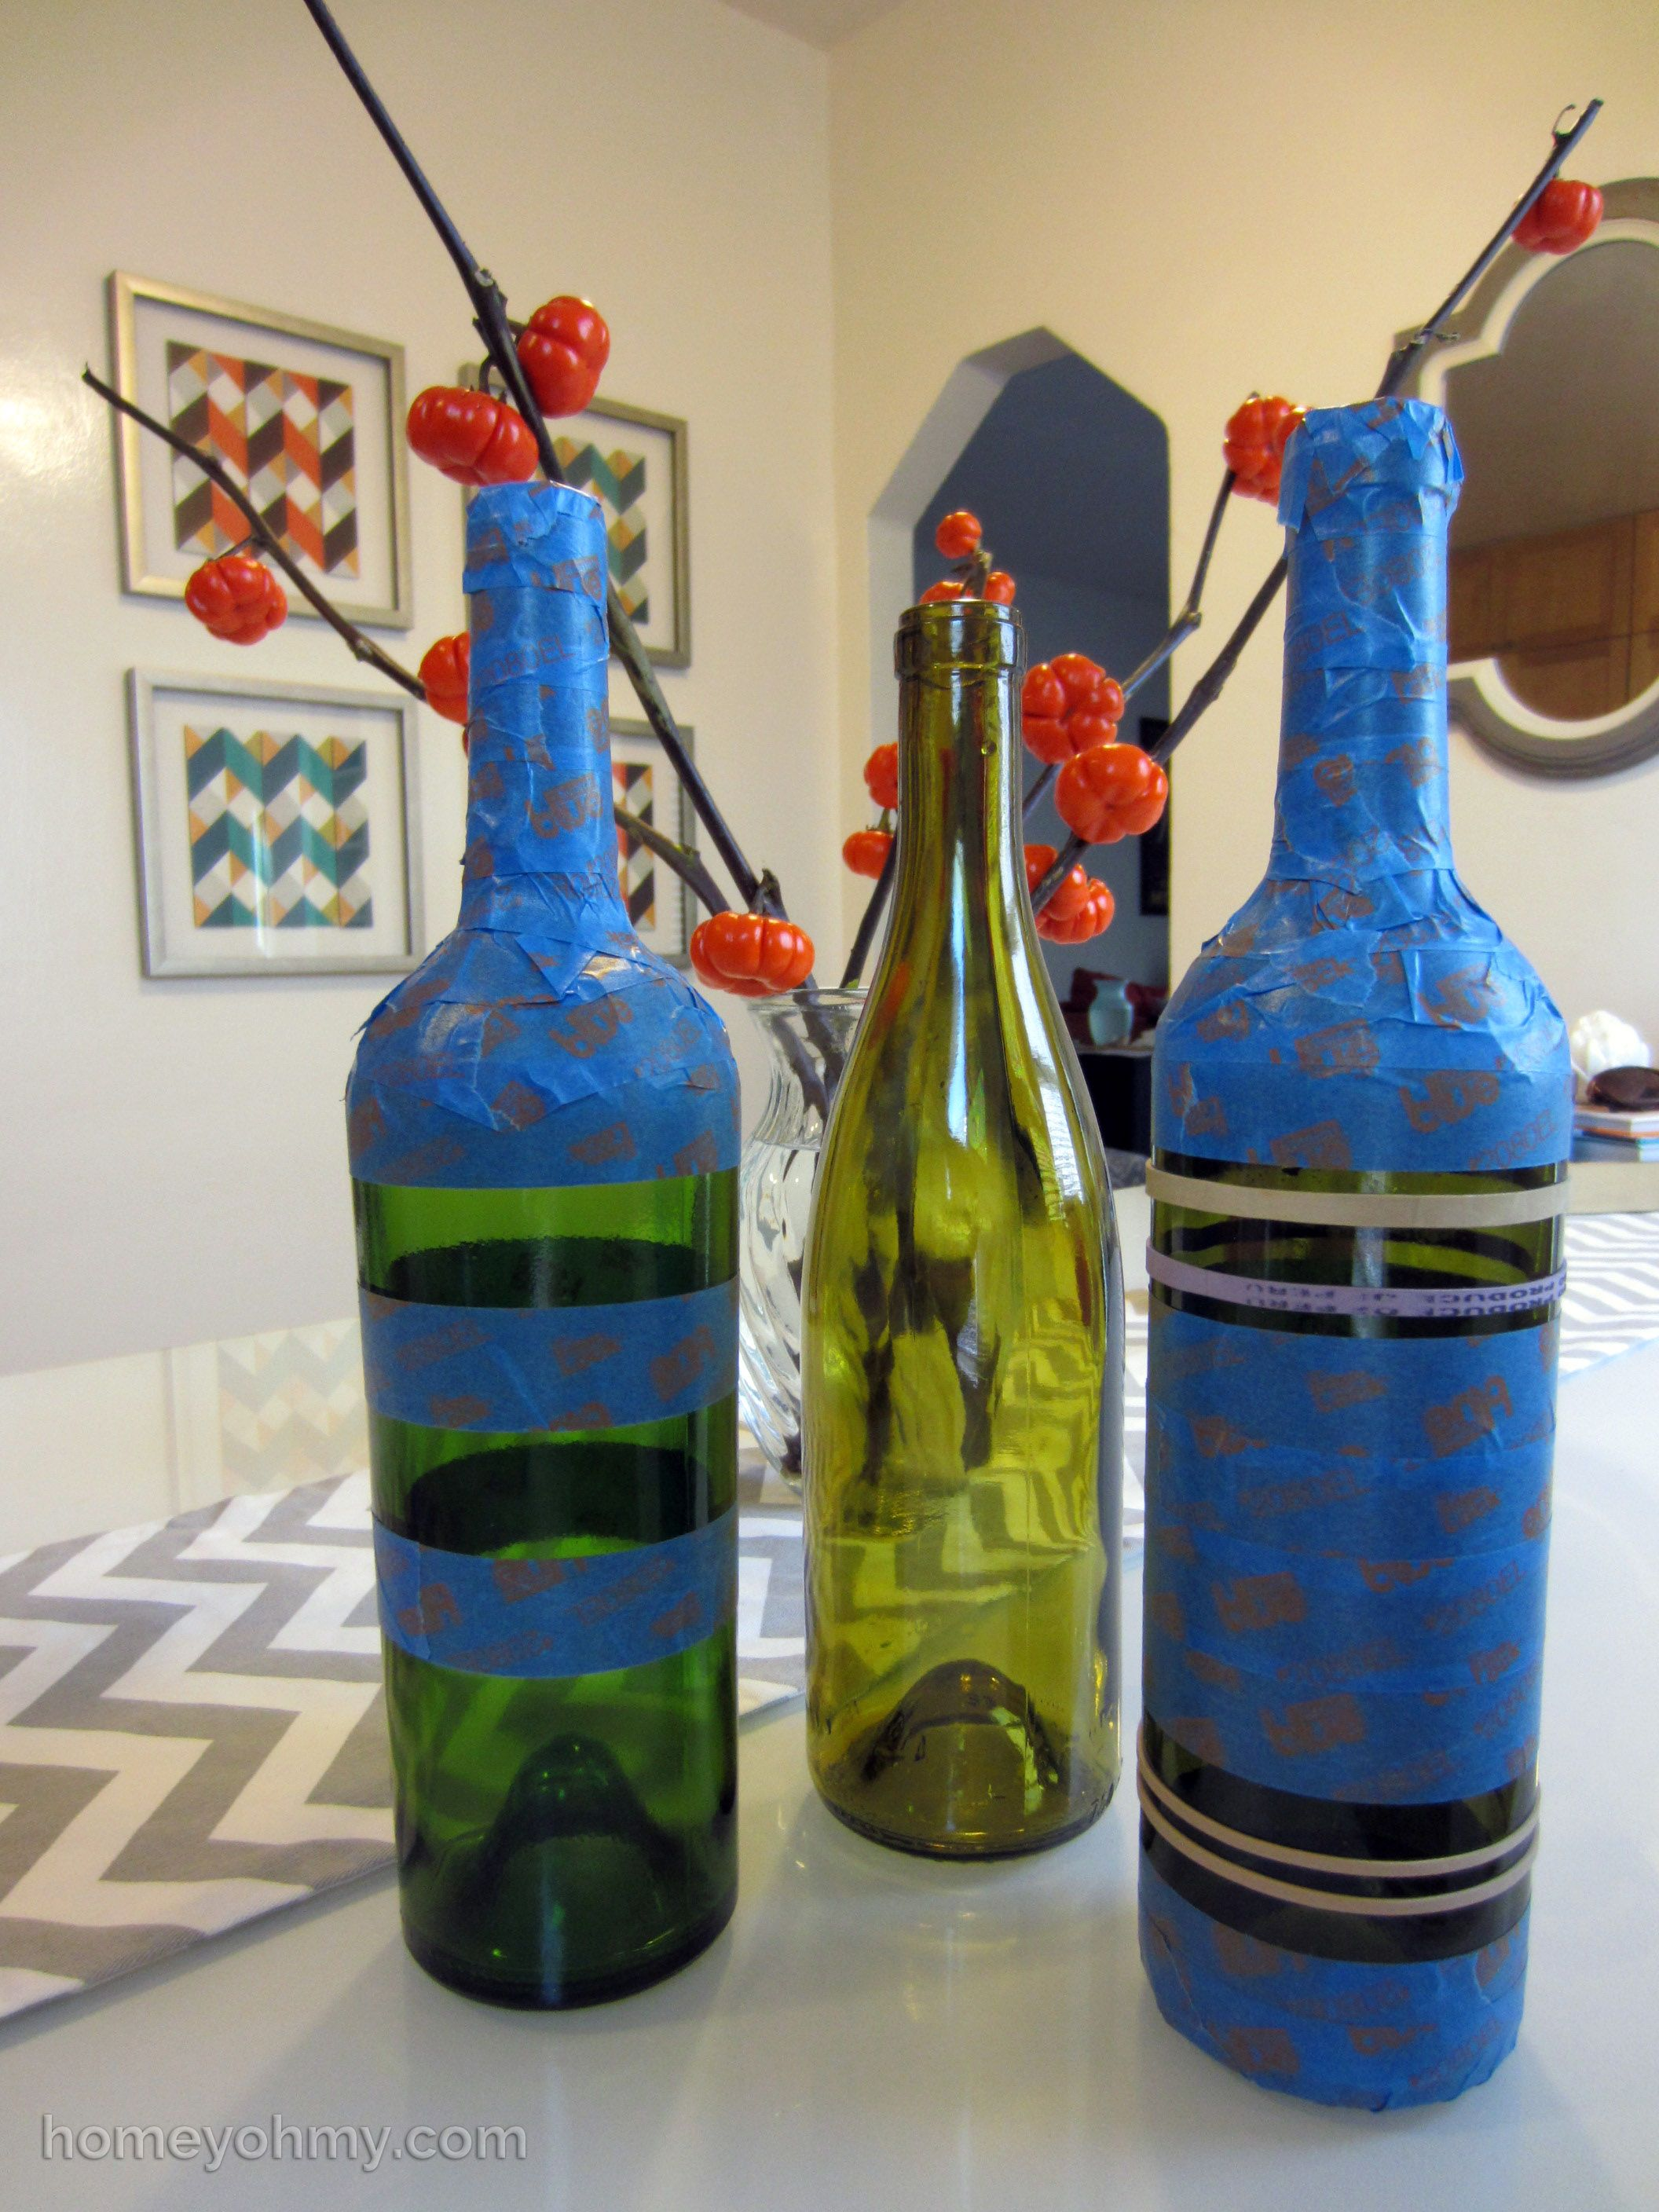 Diy spray painted wine bottles for fall decorating for Spray painting wine glasses